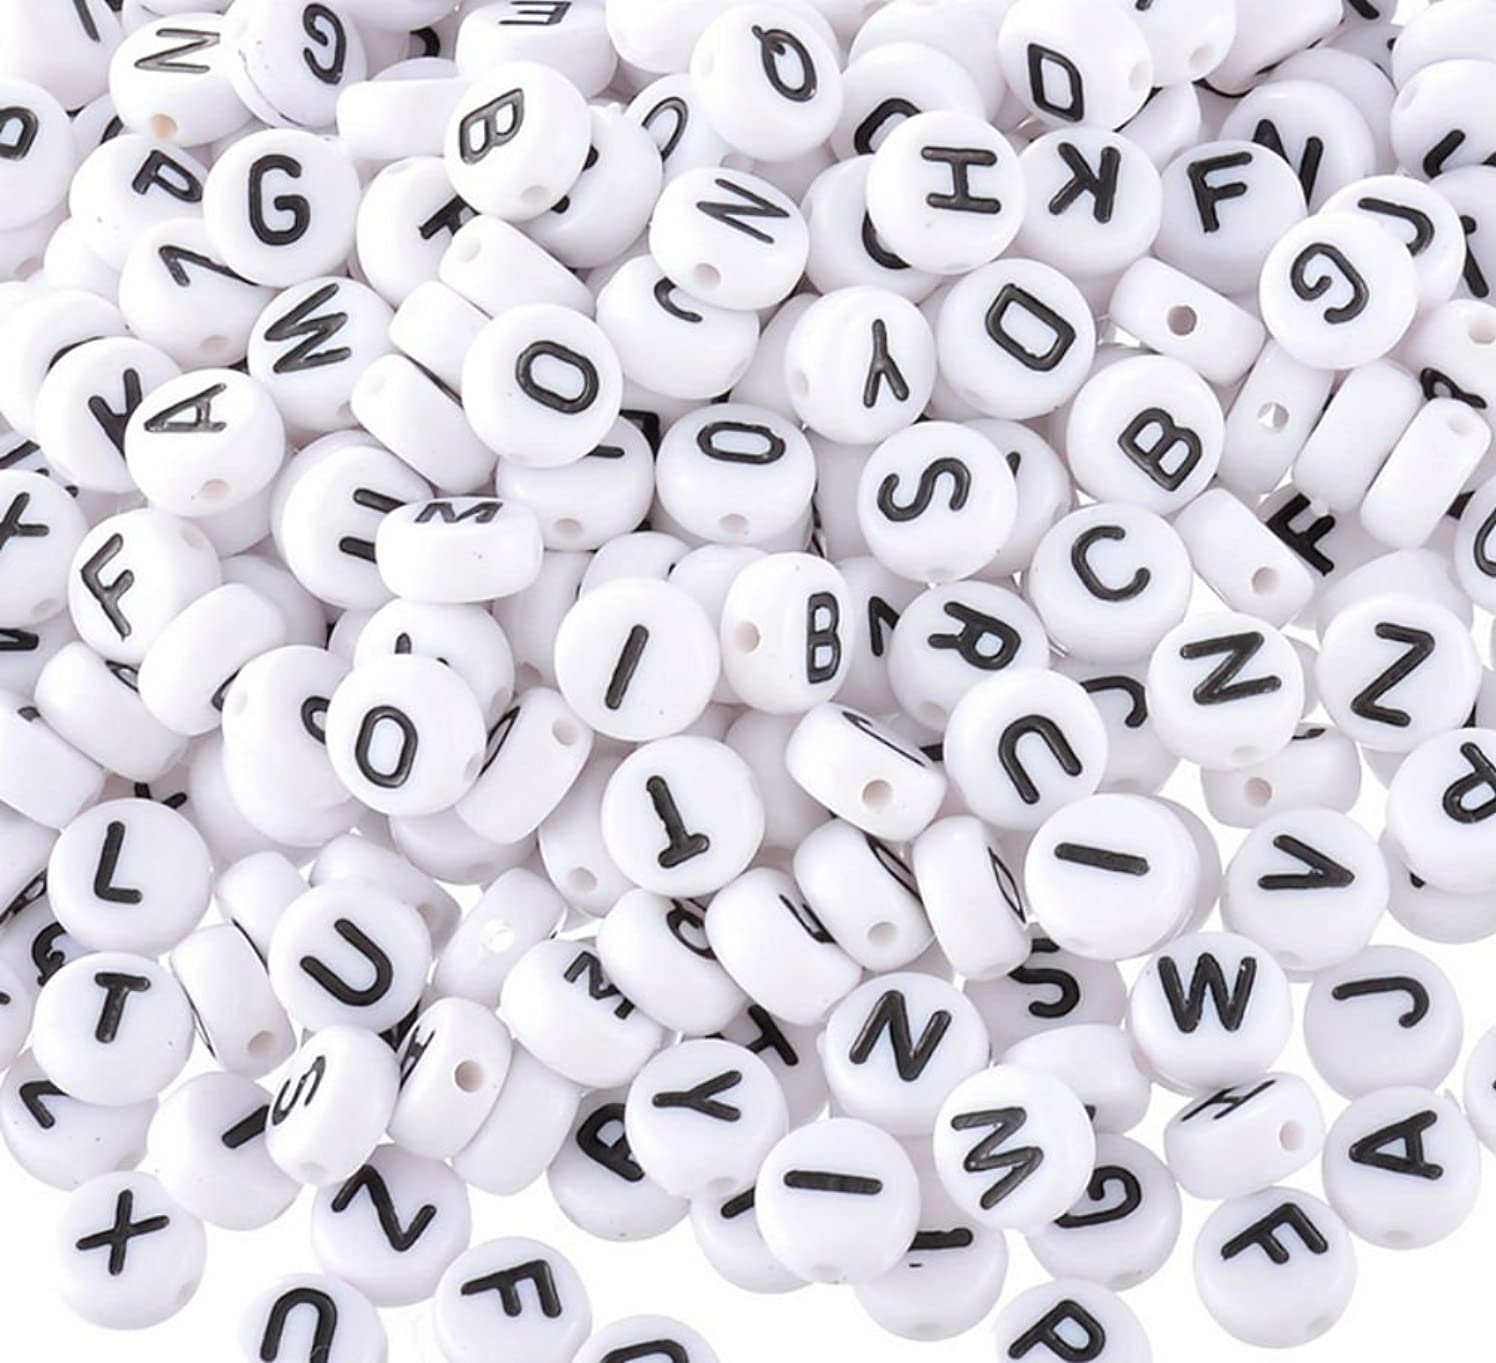 Akak Store Pack of 200 Mixed 4 x 7 mm Round White Acrylic Plastic Beads with Black Letters/ Alphabet Letter